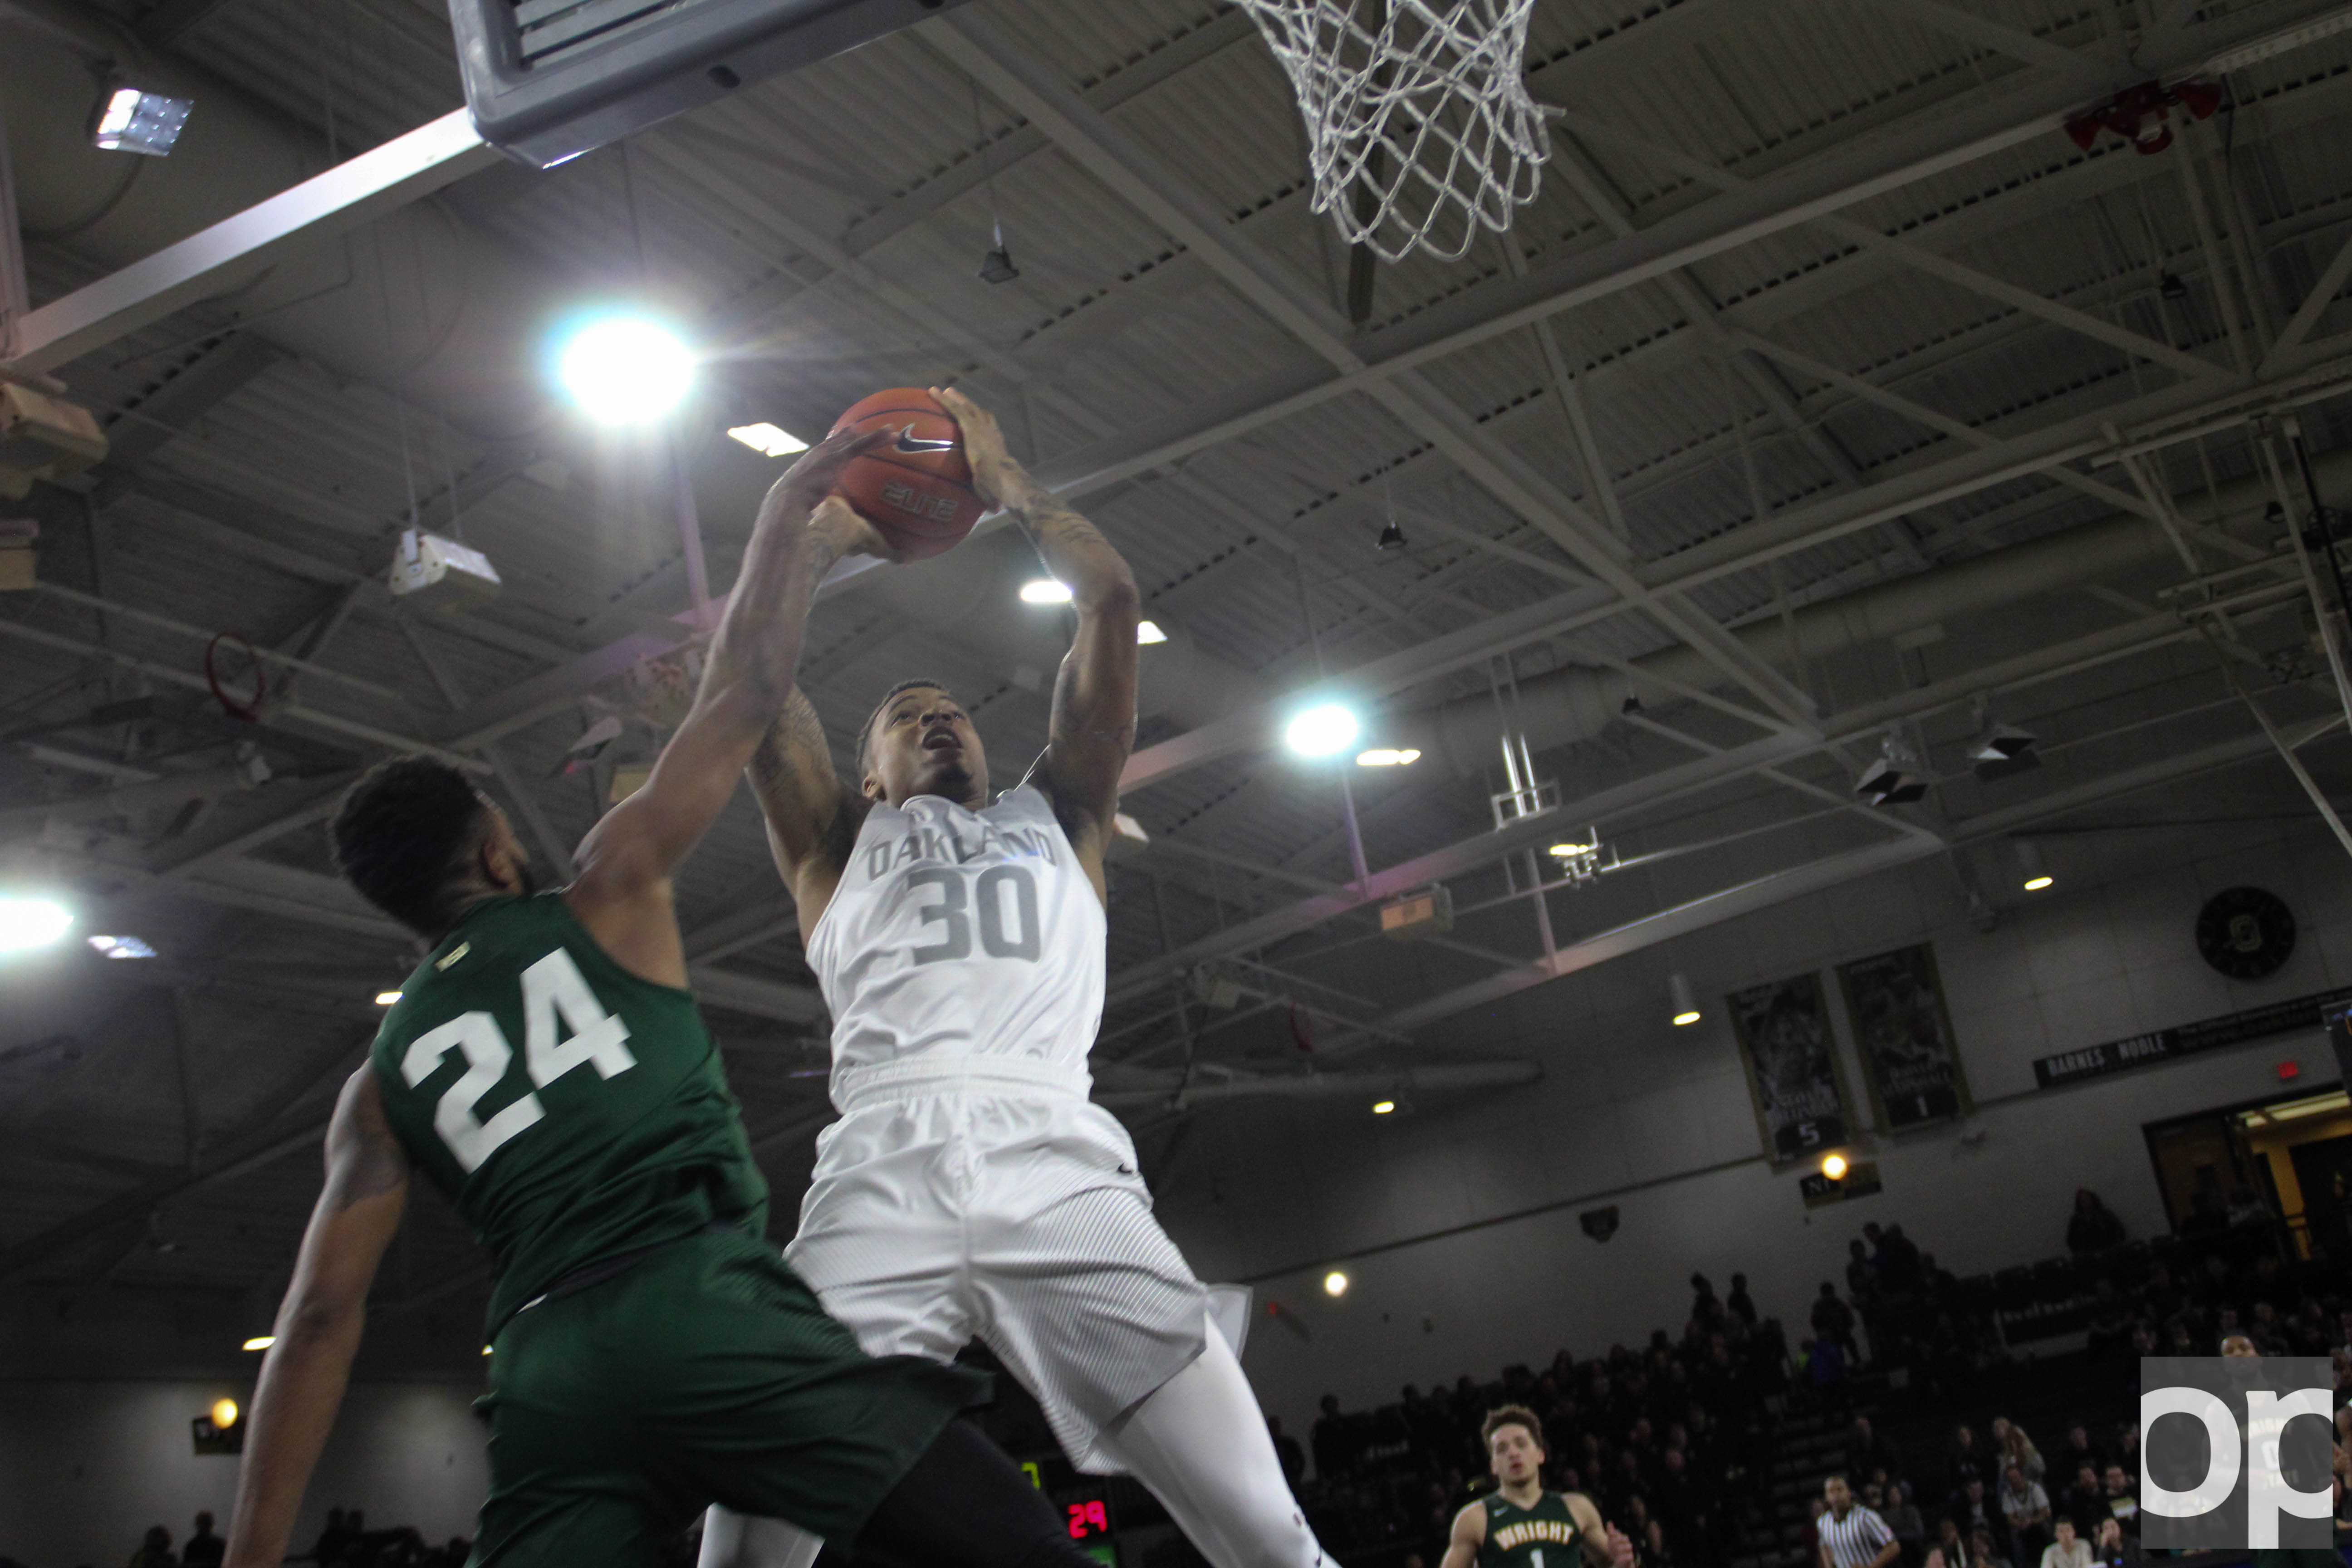 Sherron Dorsey-Walker led Oakland with 25 points to its 81-62 win over Wright State Thursday night at the O'rena.